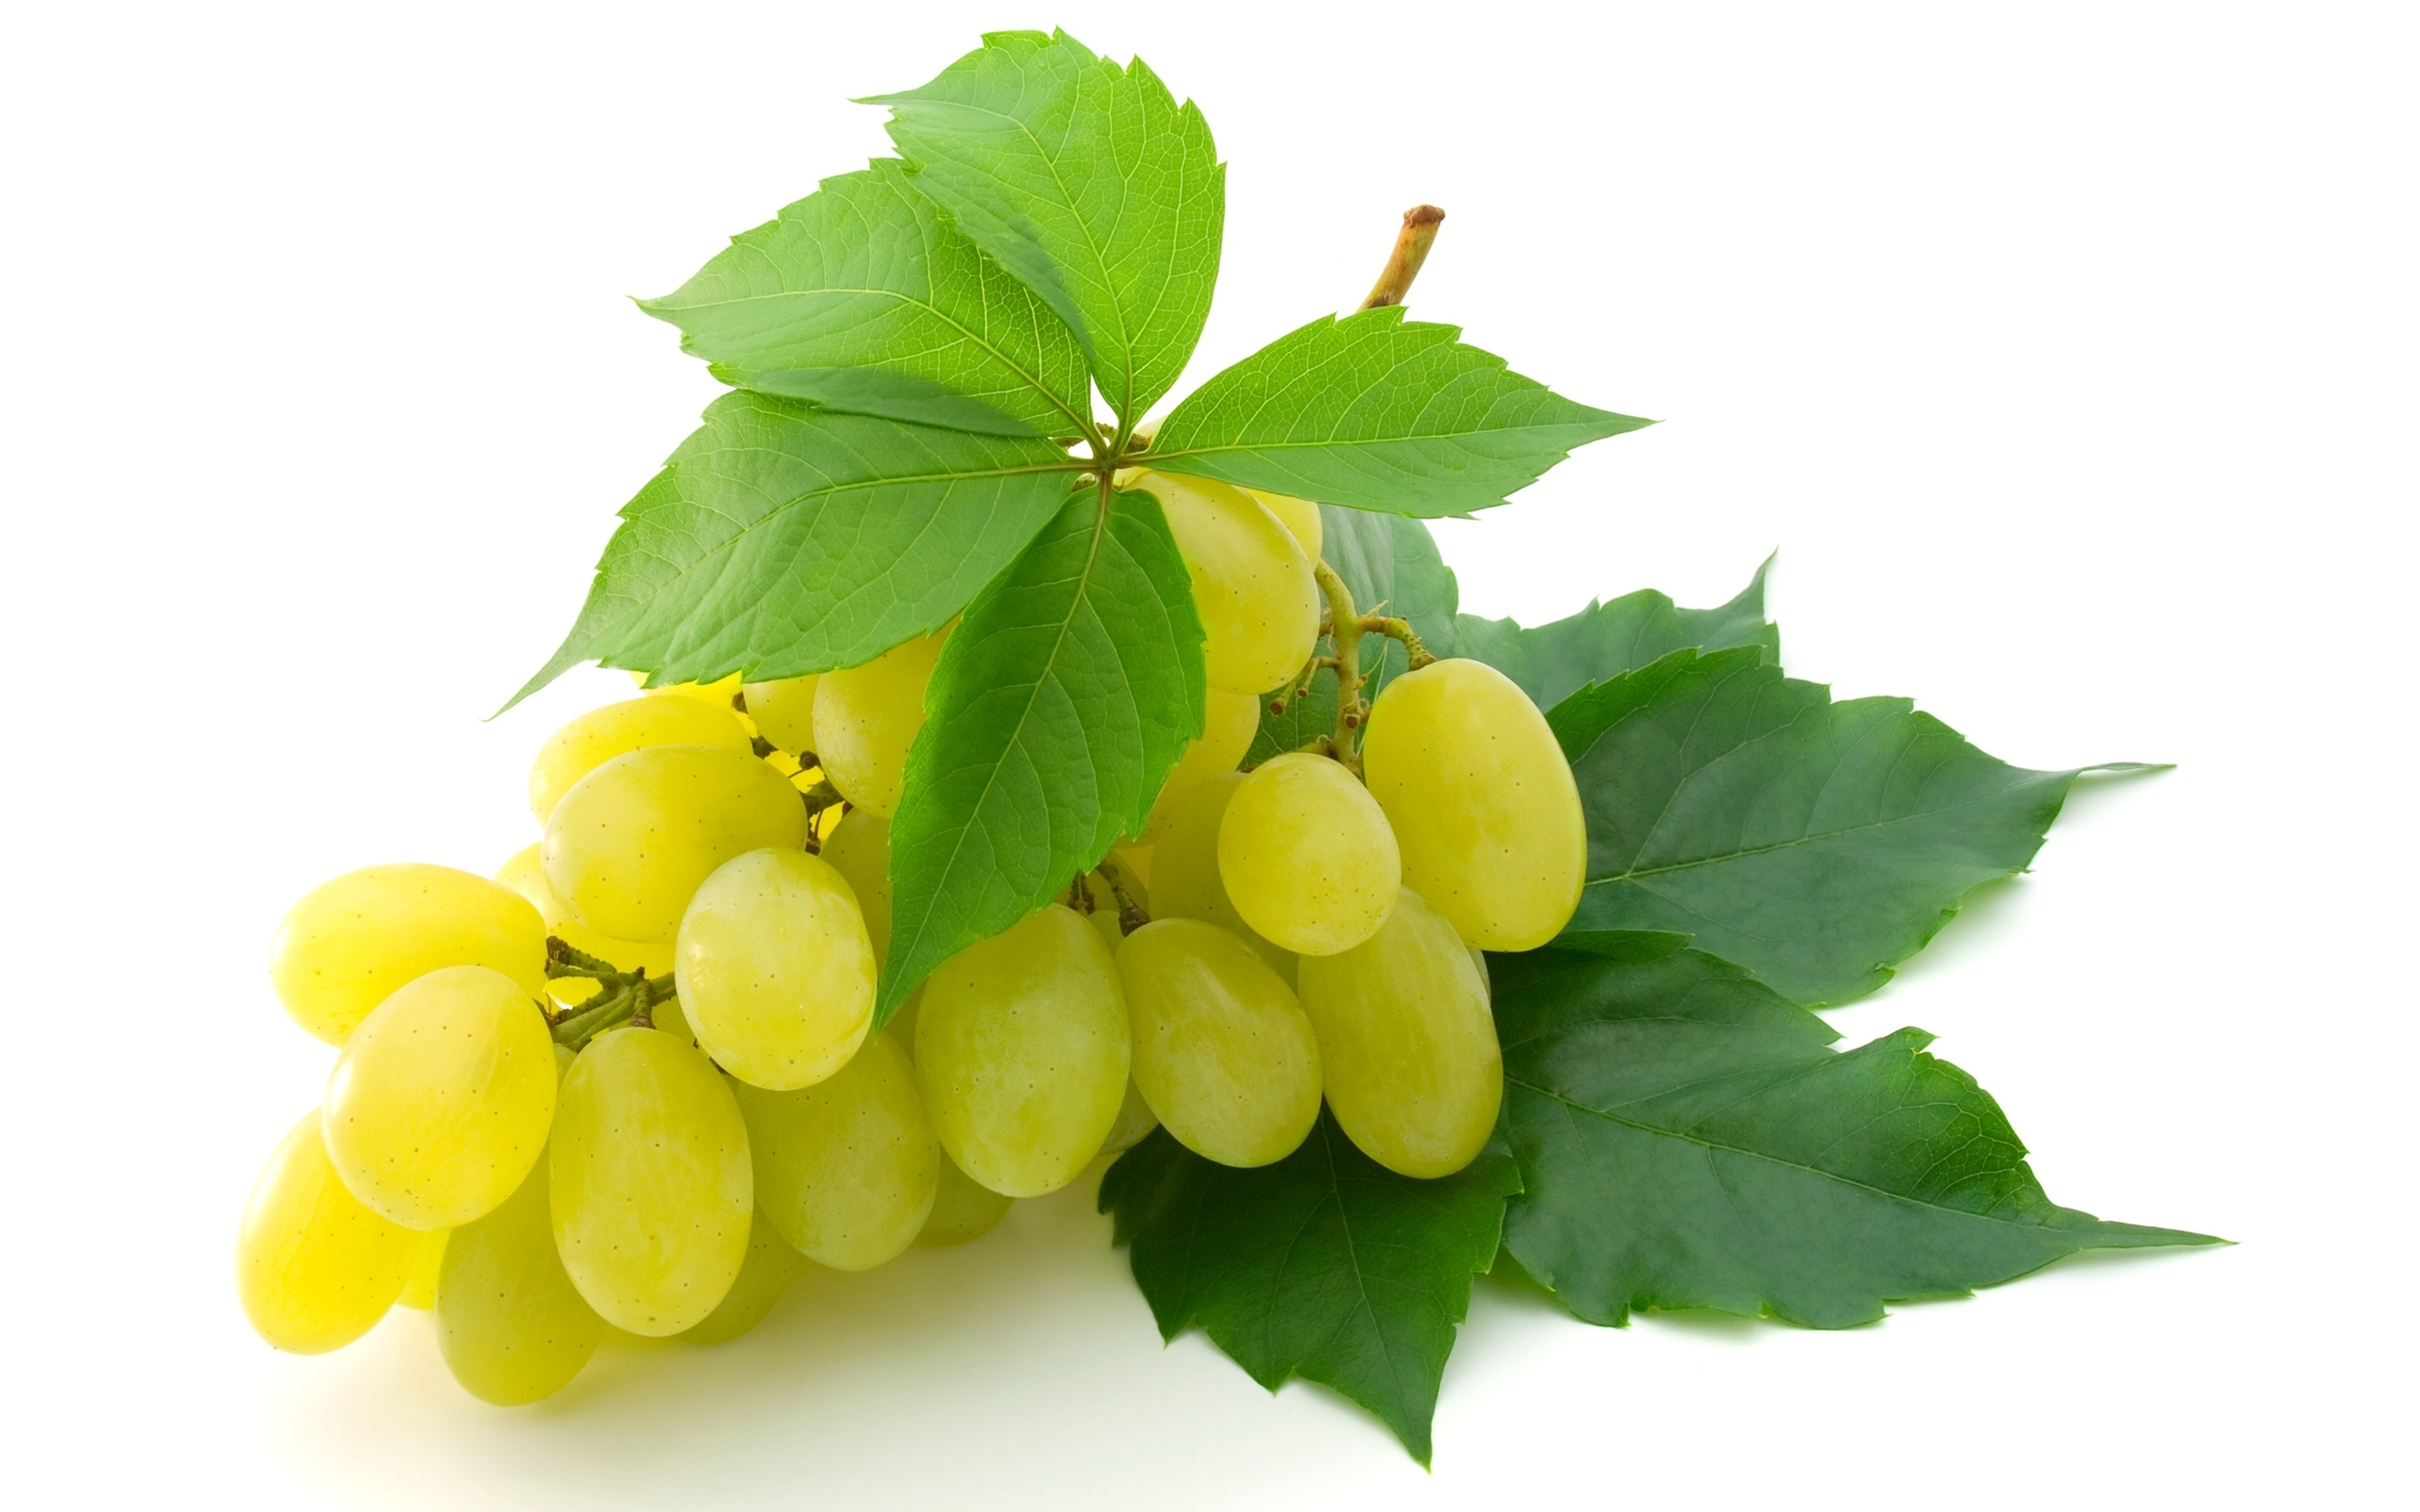 Iphone X Wallpaper Transparent Grapes Hd Wallpaper Background Image 2560x1600 Id